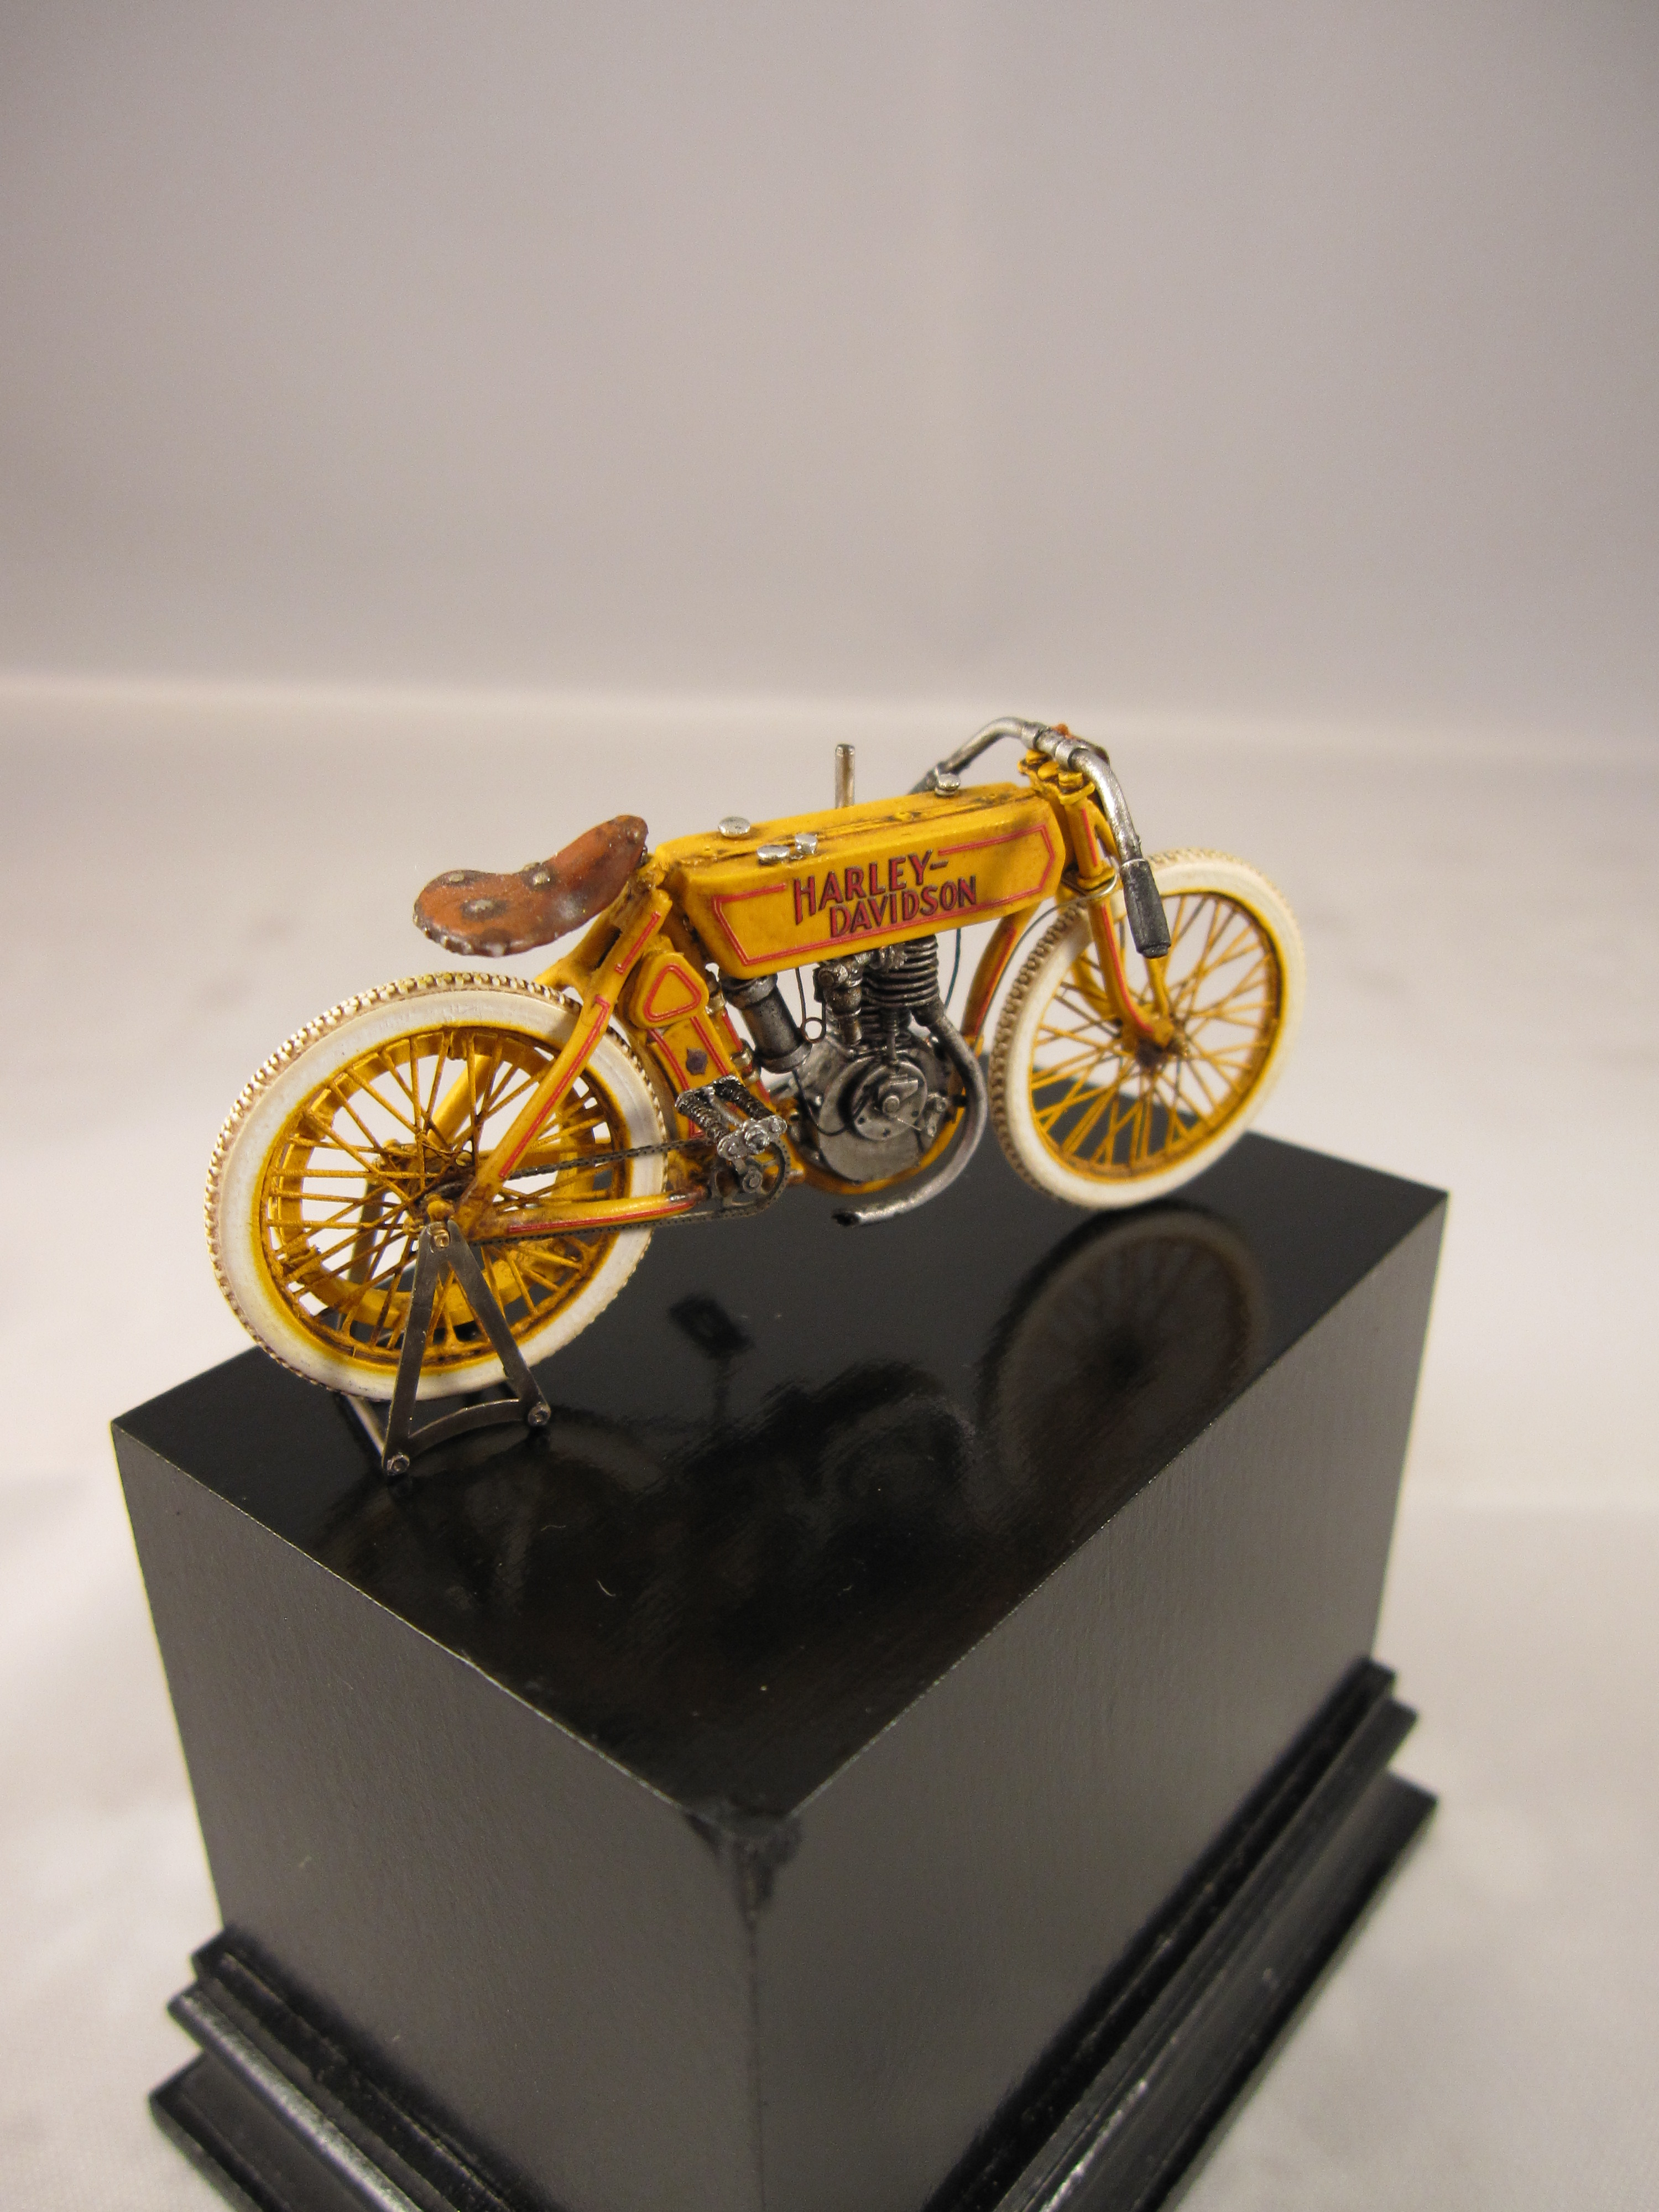 CIXM.007 HARLEY MOD.6 1910 BOARD TRACK RACER 1:35 – cixmodels